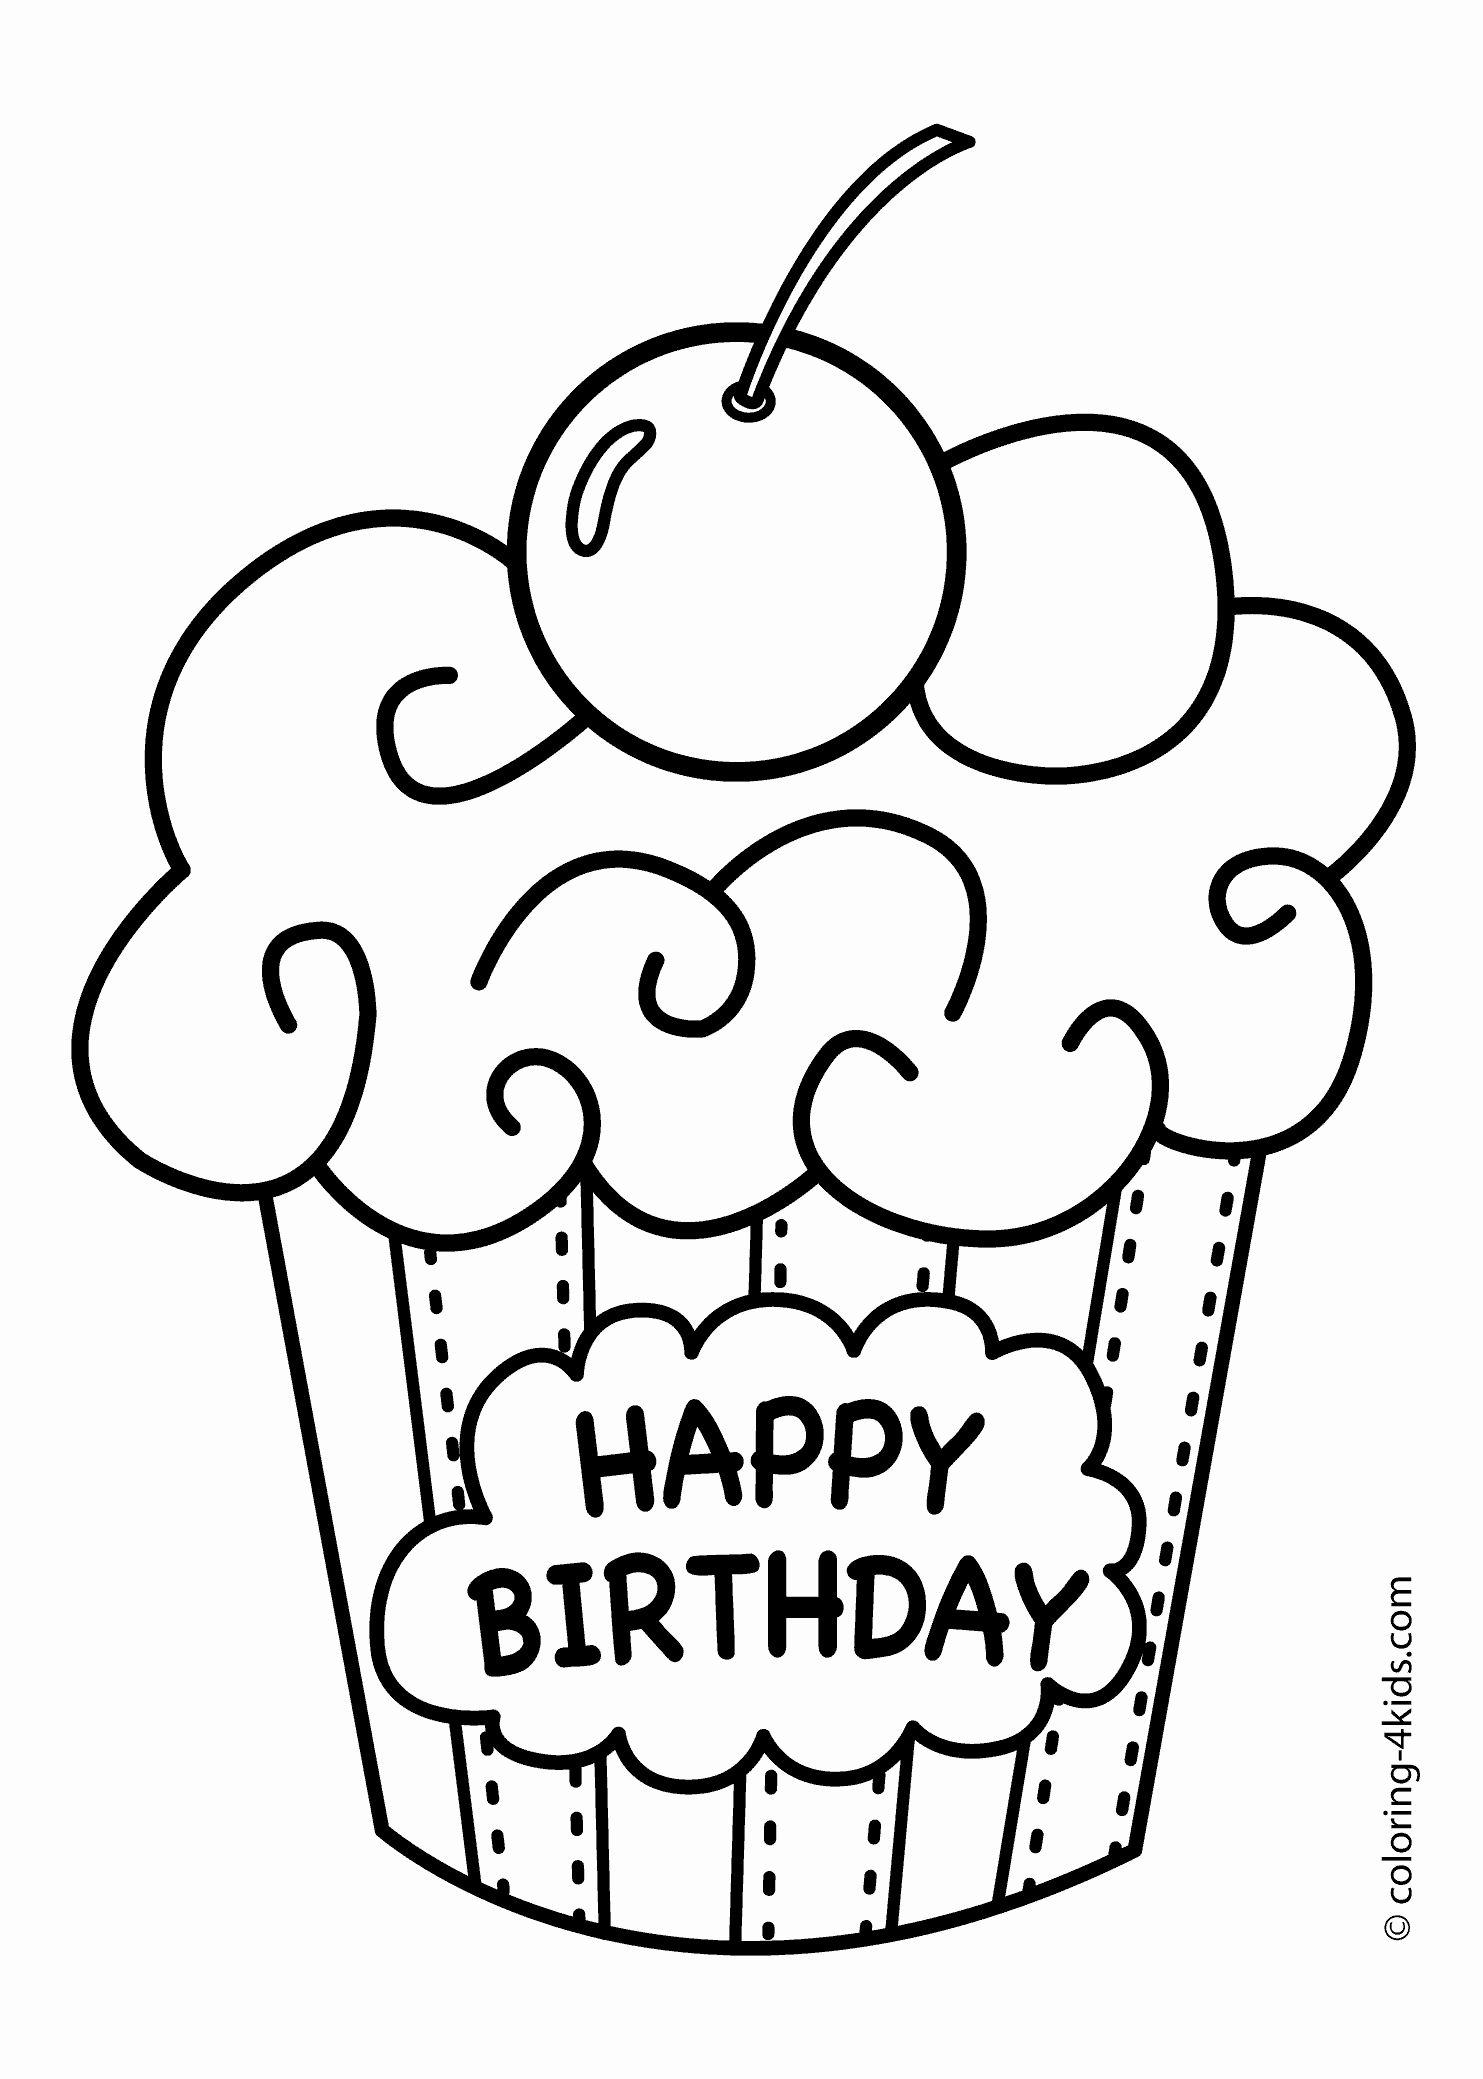 Free Easy To Print Cupcake Coloring Pages Birthday Coloring Pages Cupcake Coloring Pages Happy Birthday Coloring Pages